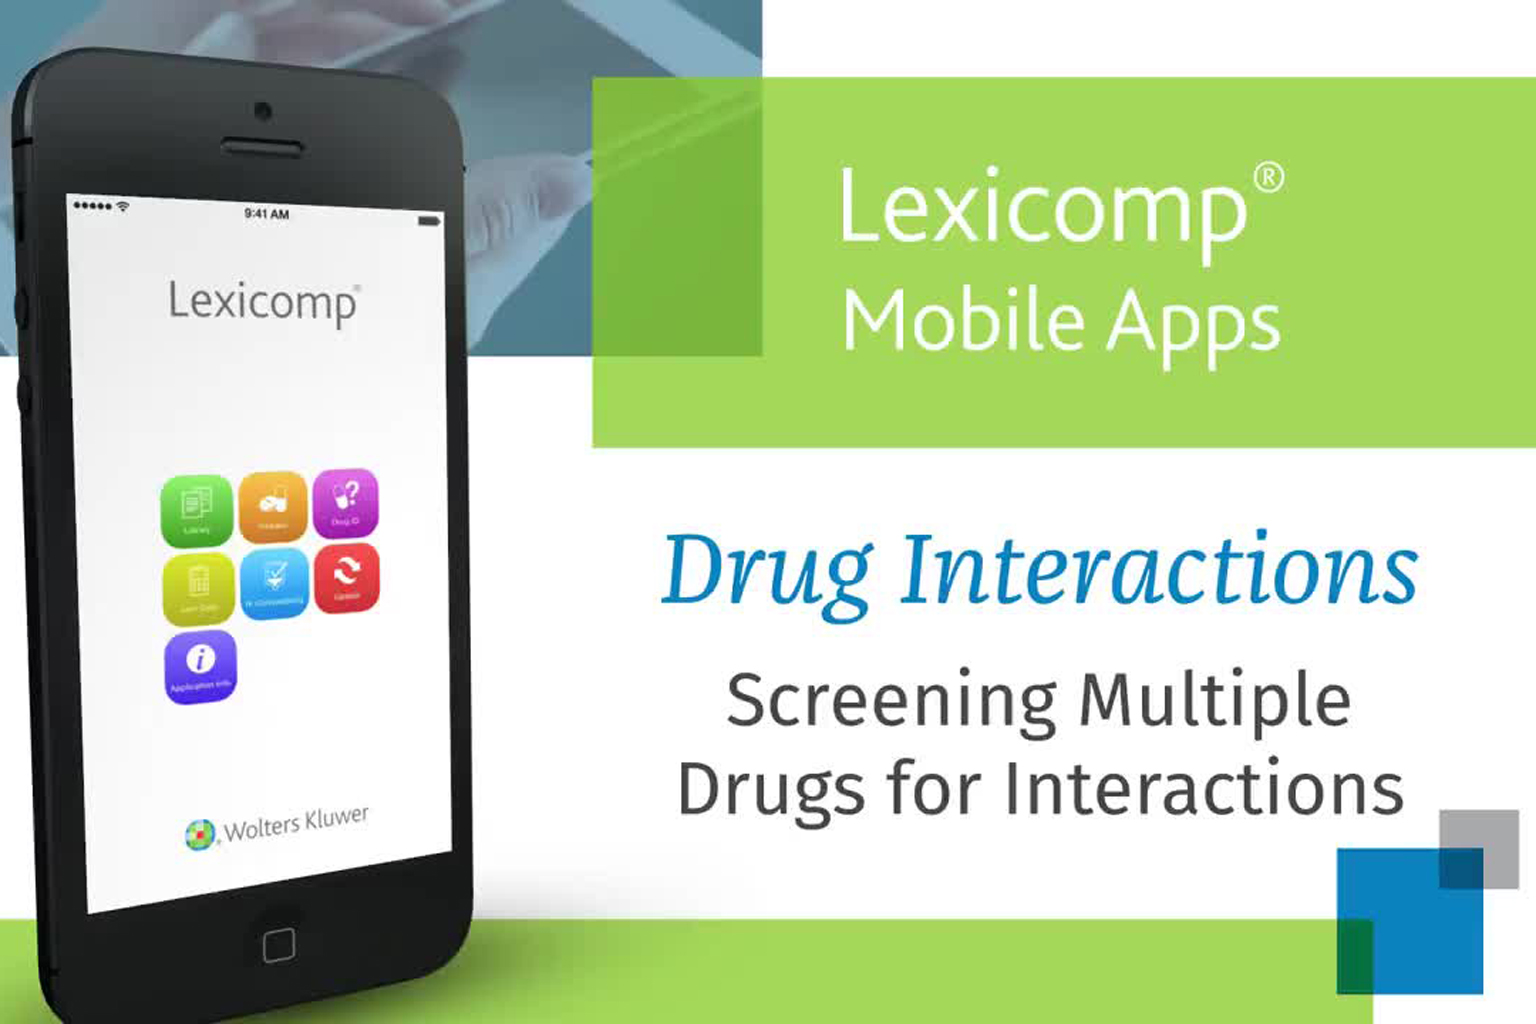 video screen - Lexicomp Mobile App Interactions Checking